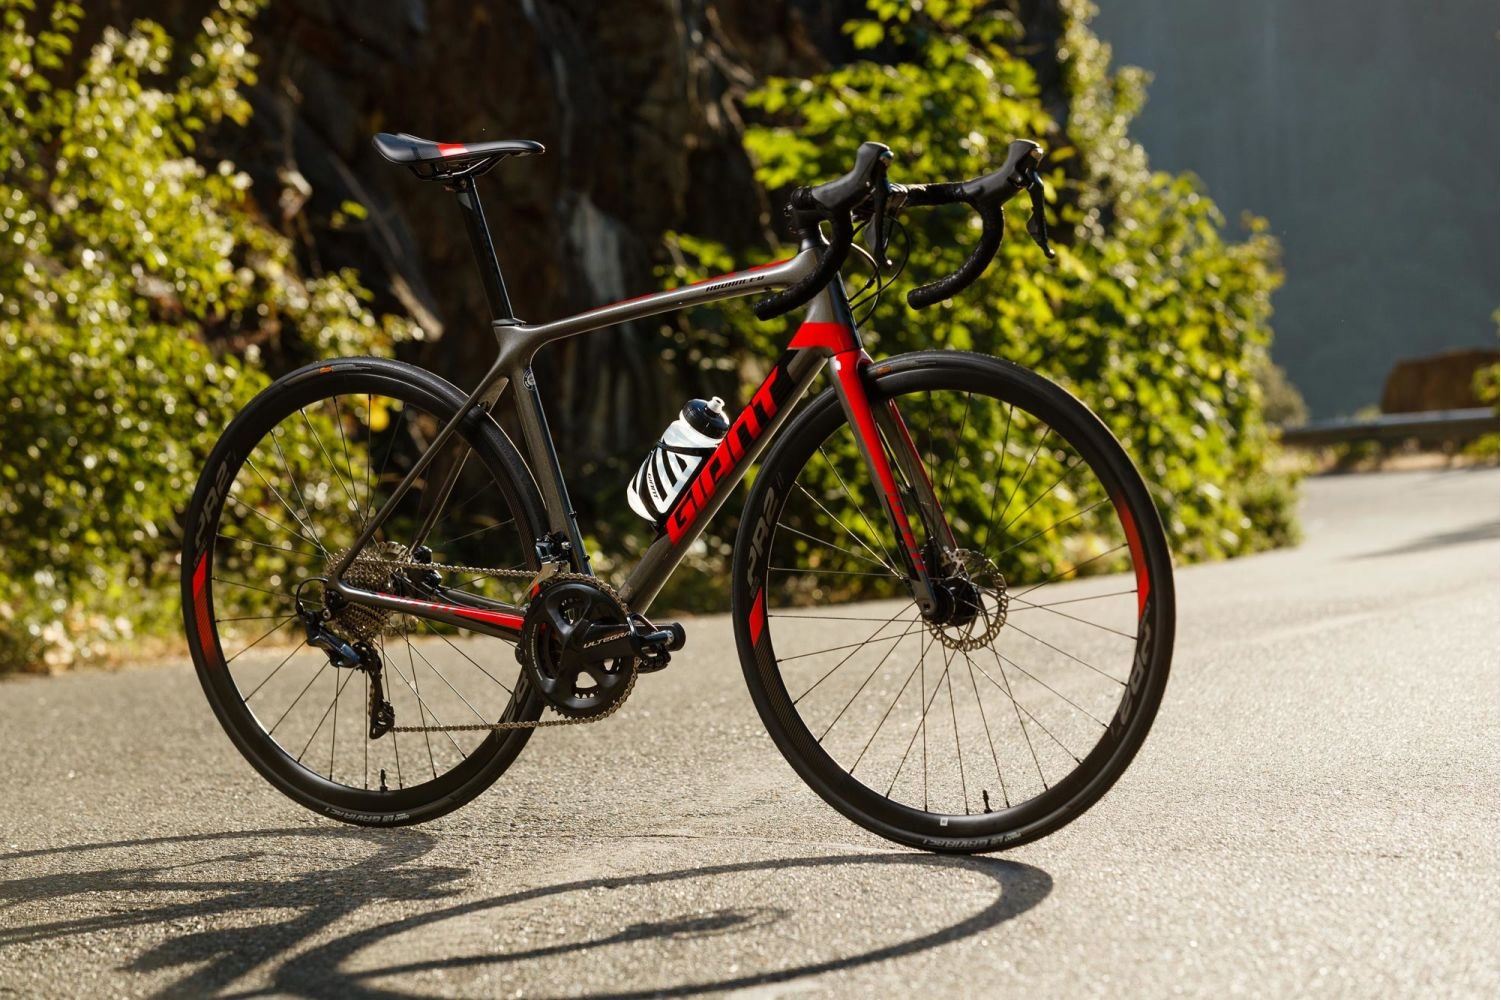 2fadf27d2b8 The 2019 TCR Advanced Disc 1. Availability varies by country.